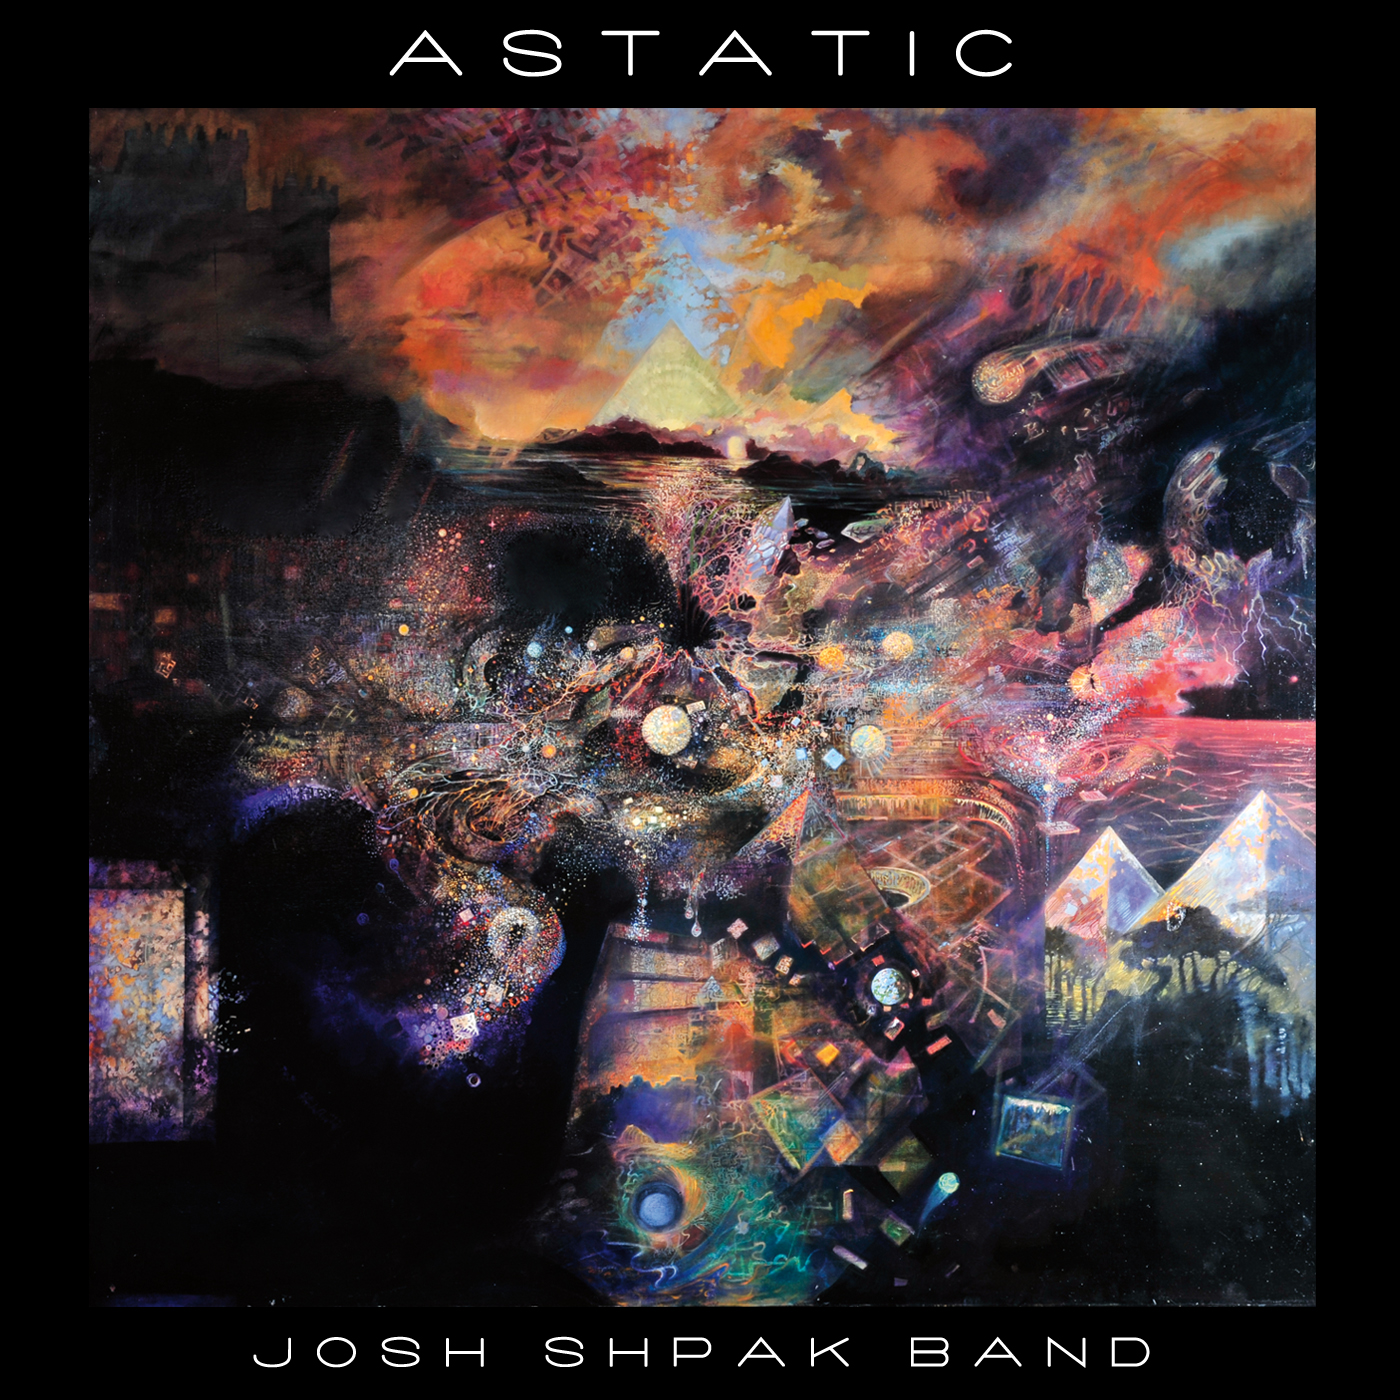 Josh Shpak's 'Astatic' Reviewed by BeBop Spoken Here